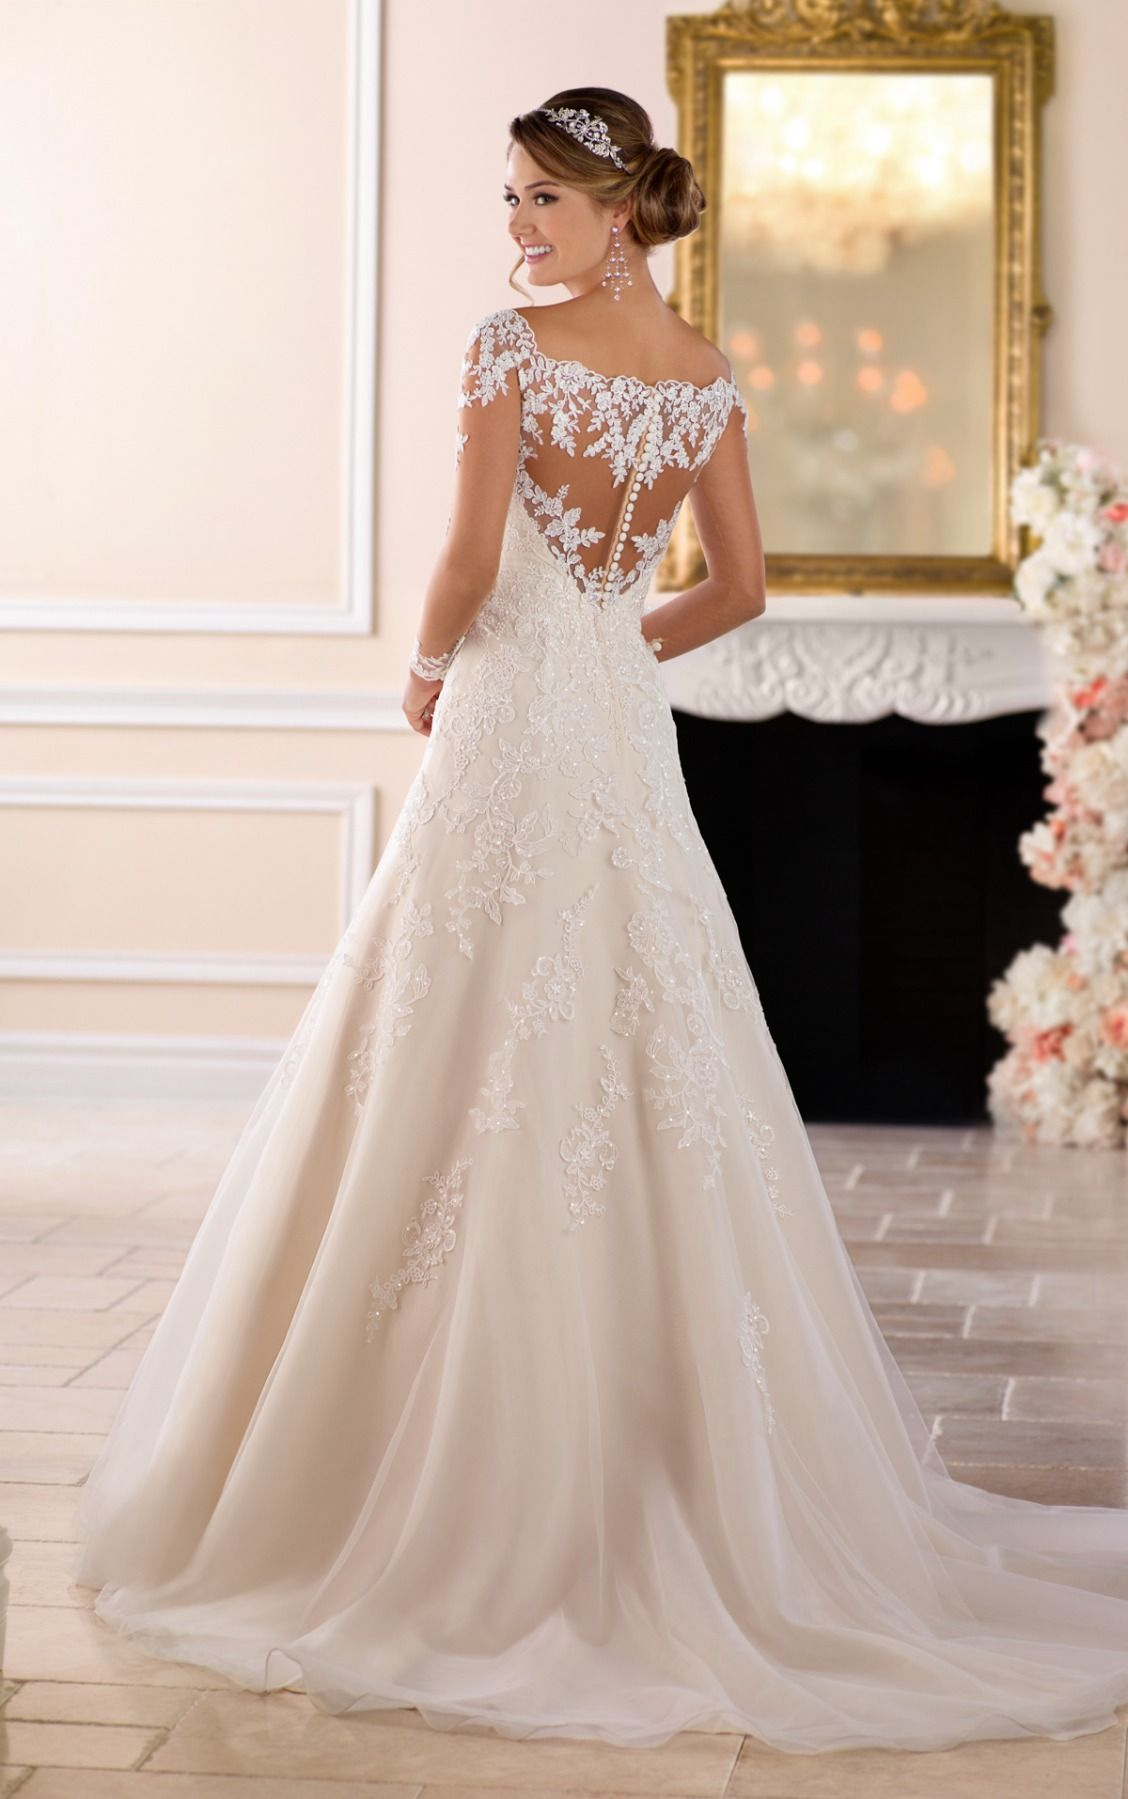 Off the Shoulder Lace Wedding Dress with Sleeves | Pinterest ...